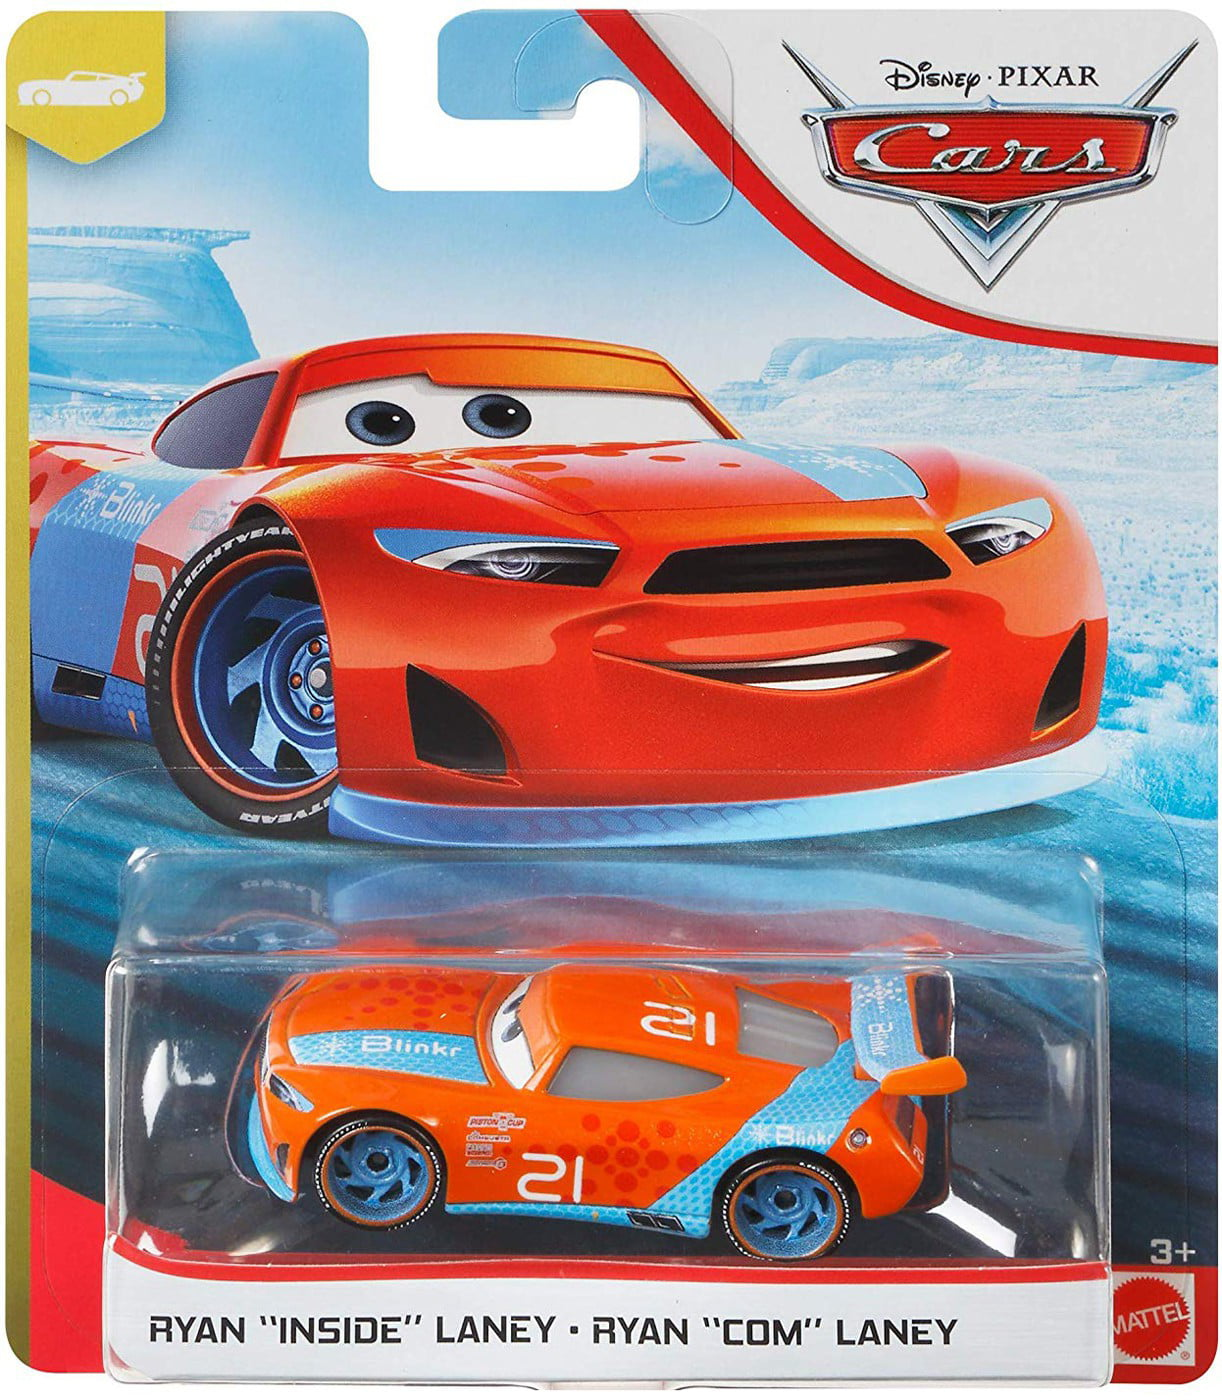 2x Disney Pixar Cars ▪ CHASE RACELOTT /& RYAN Inside LANEY ▪  Next-Gen Piston Cup